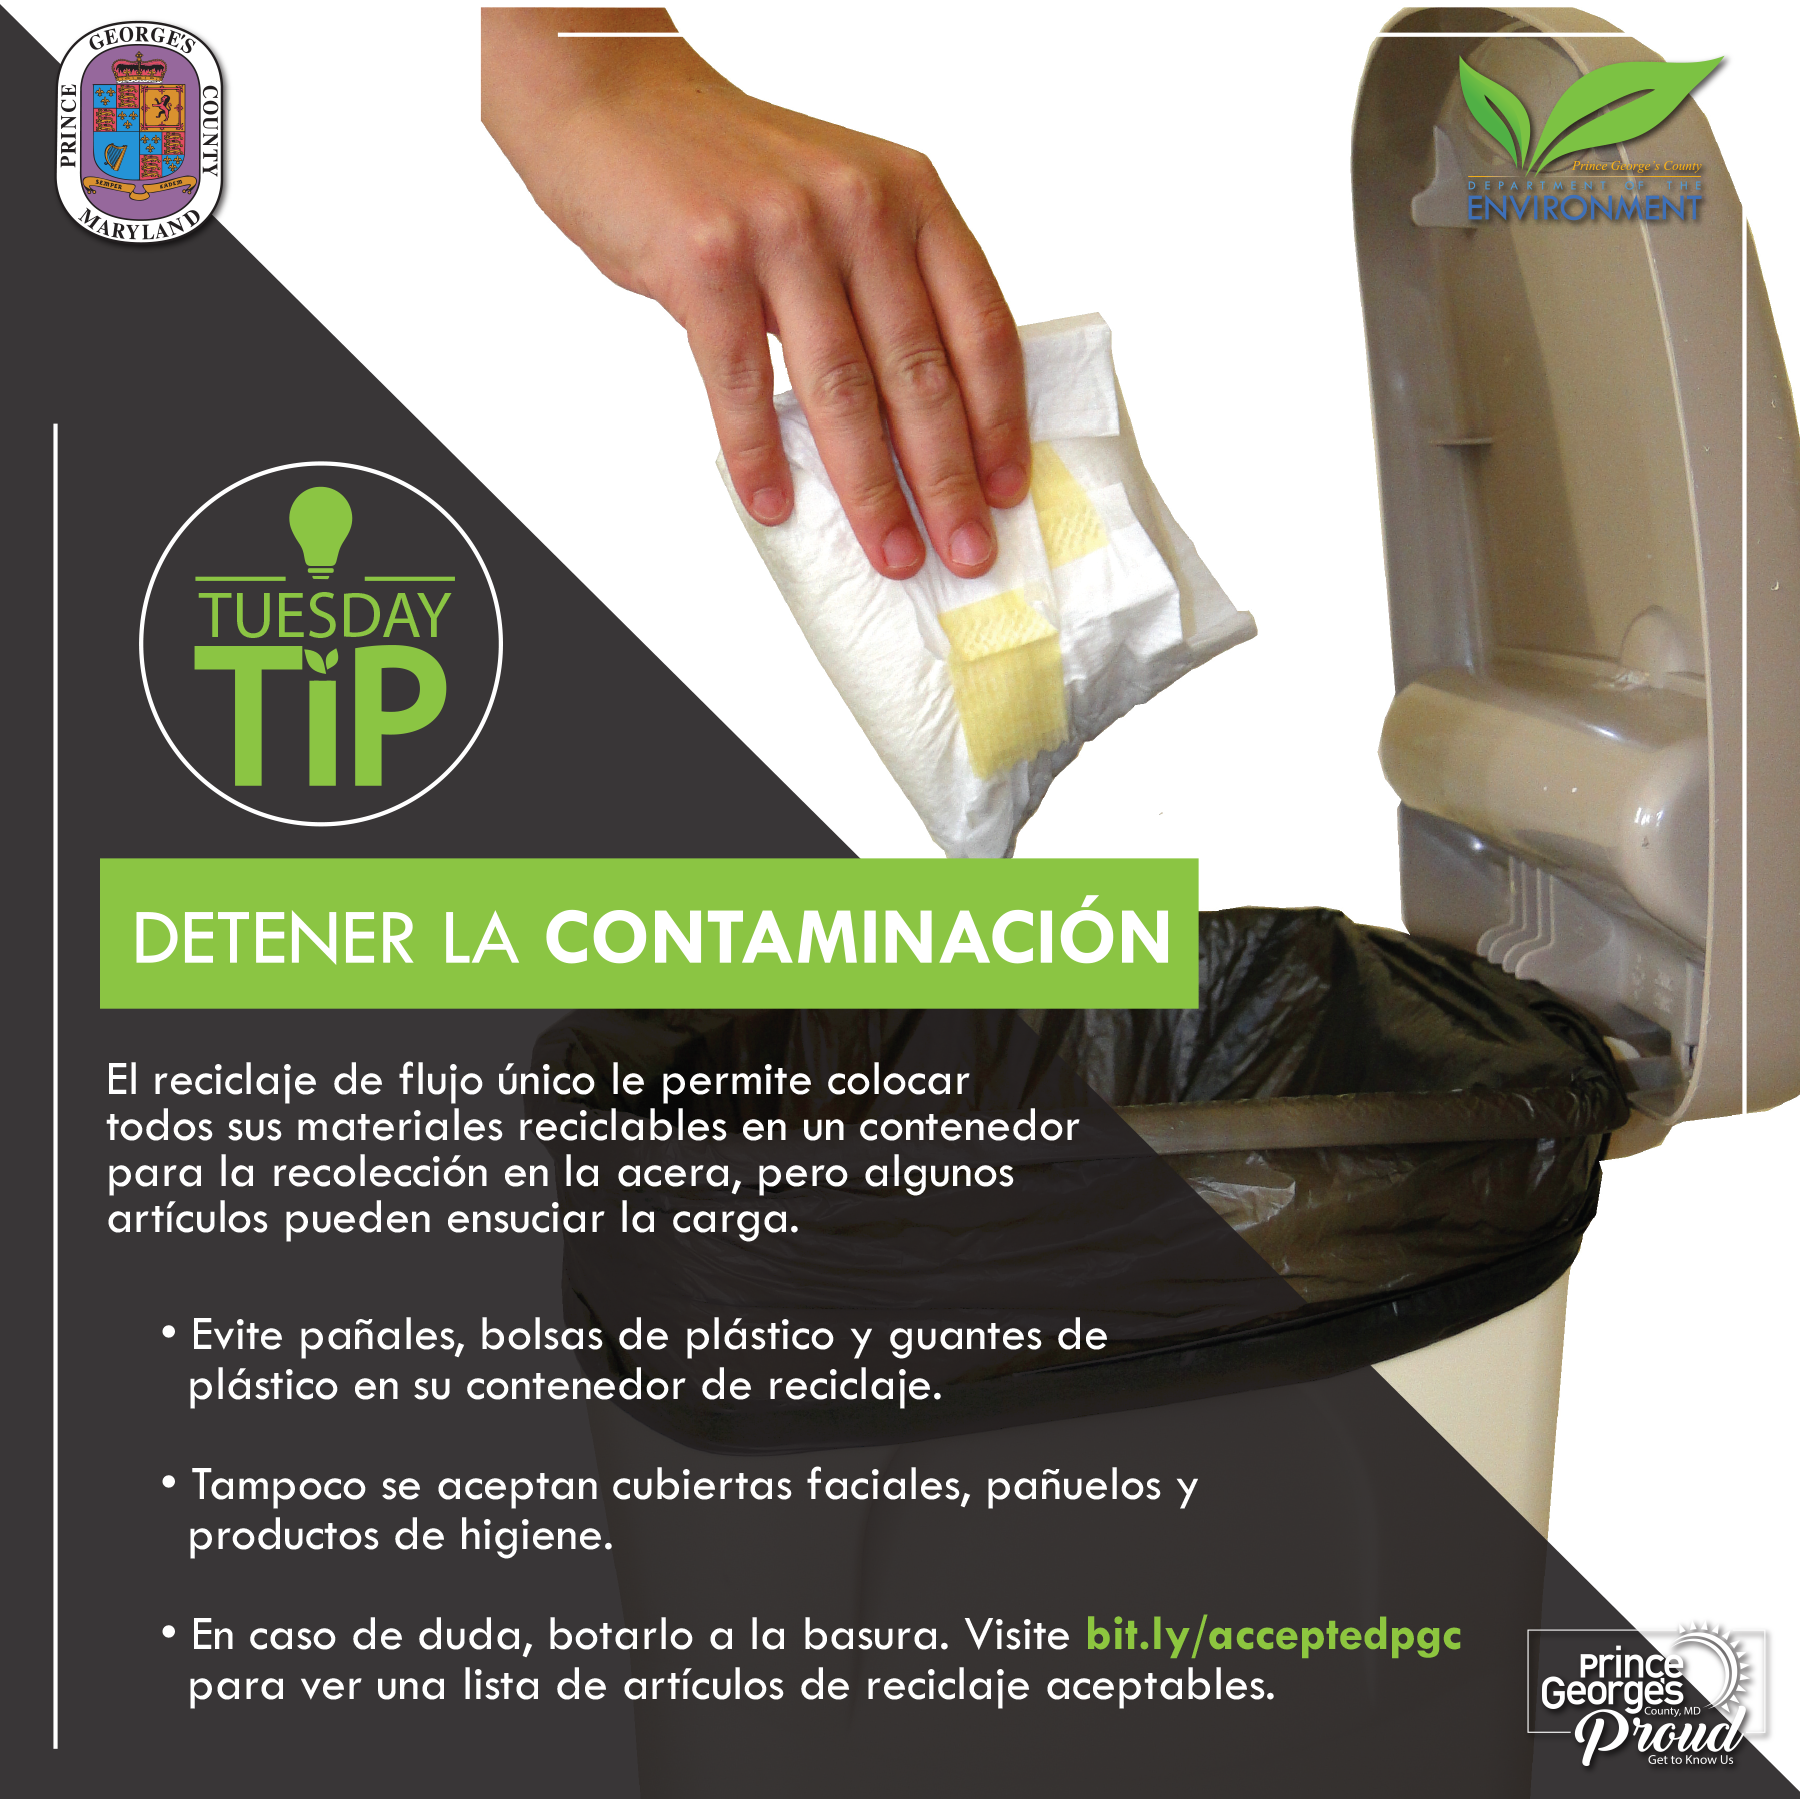 Tues tip 6.2.20 stop contamination sp